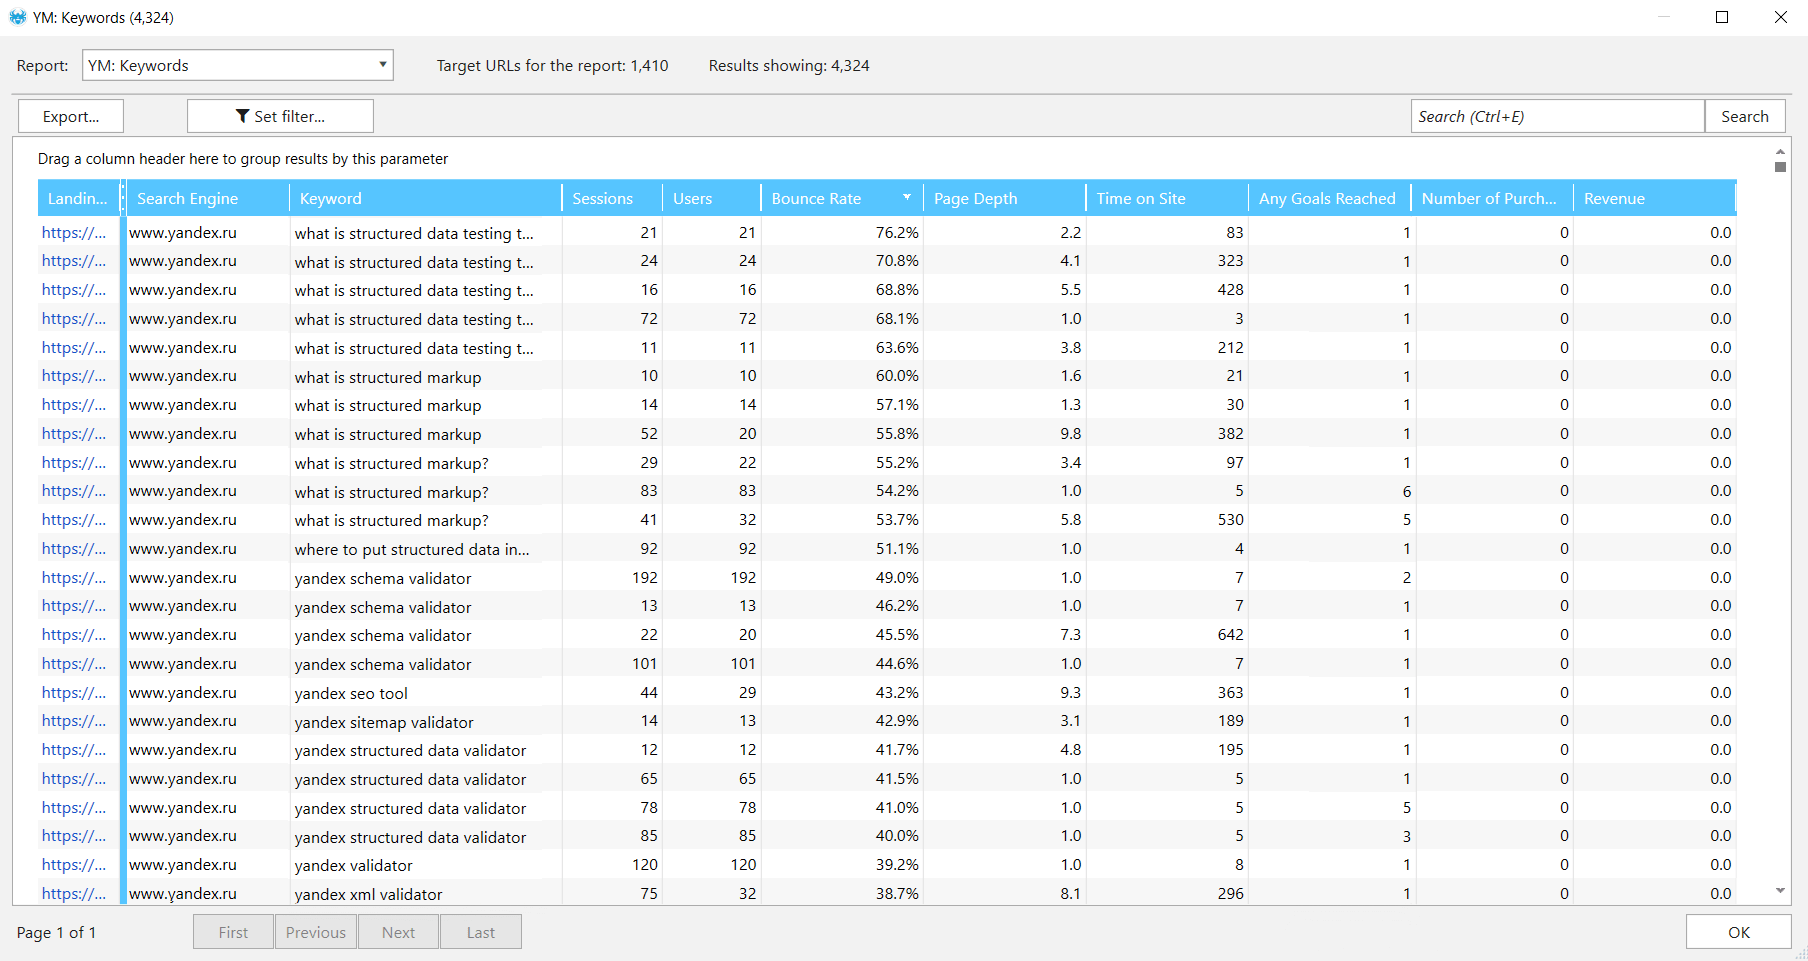 In the 'Database' table in Netpeak Spider, you can observe, export, and filter such data from Yandex.Metrica as search queries, sessions, users, pageviews, time on site, conversions, the number of purchases, and revenue